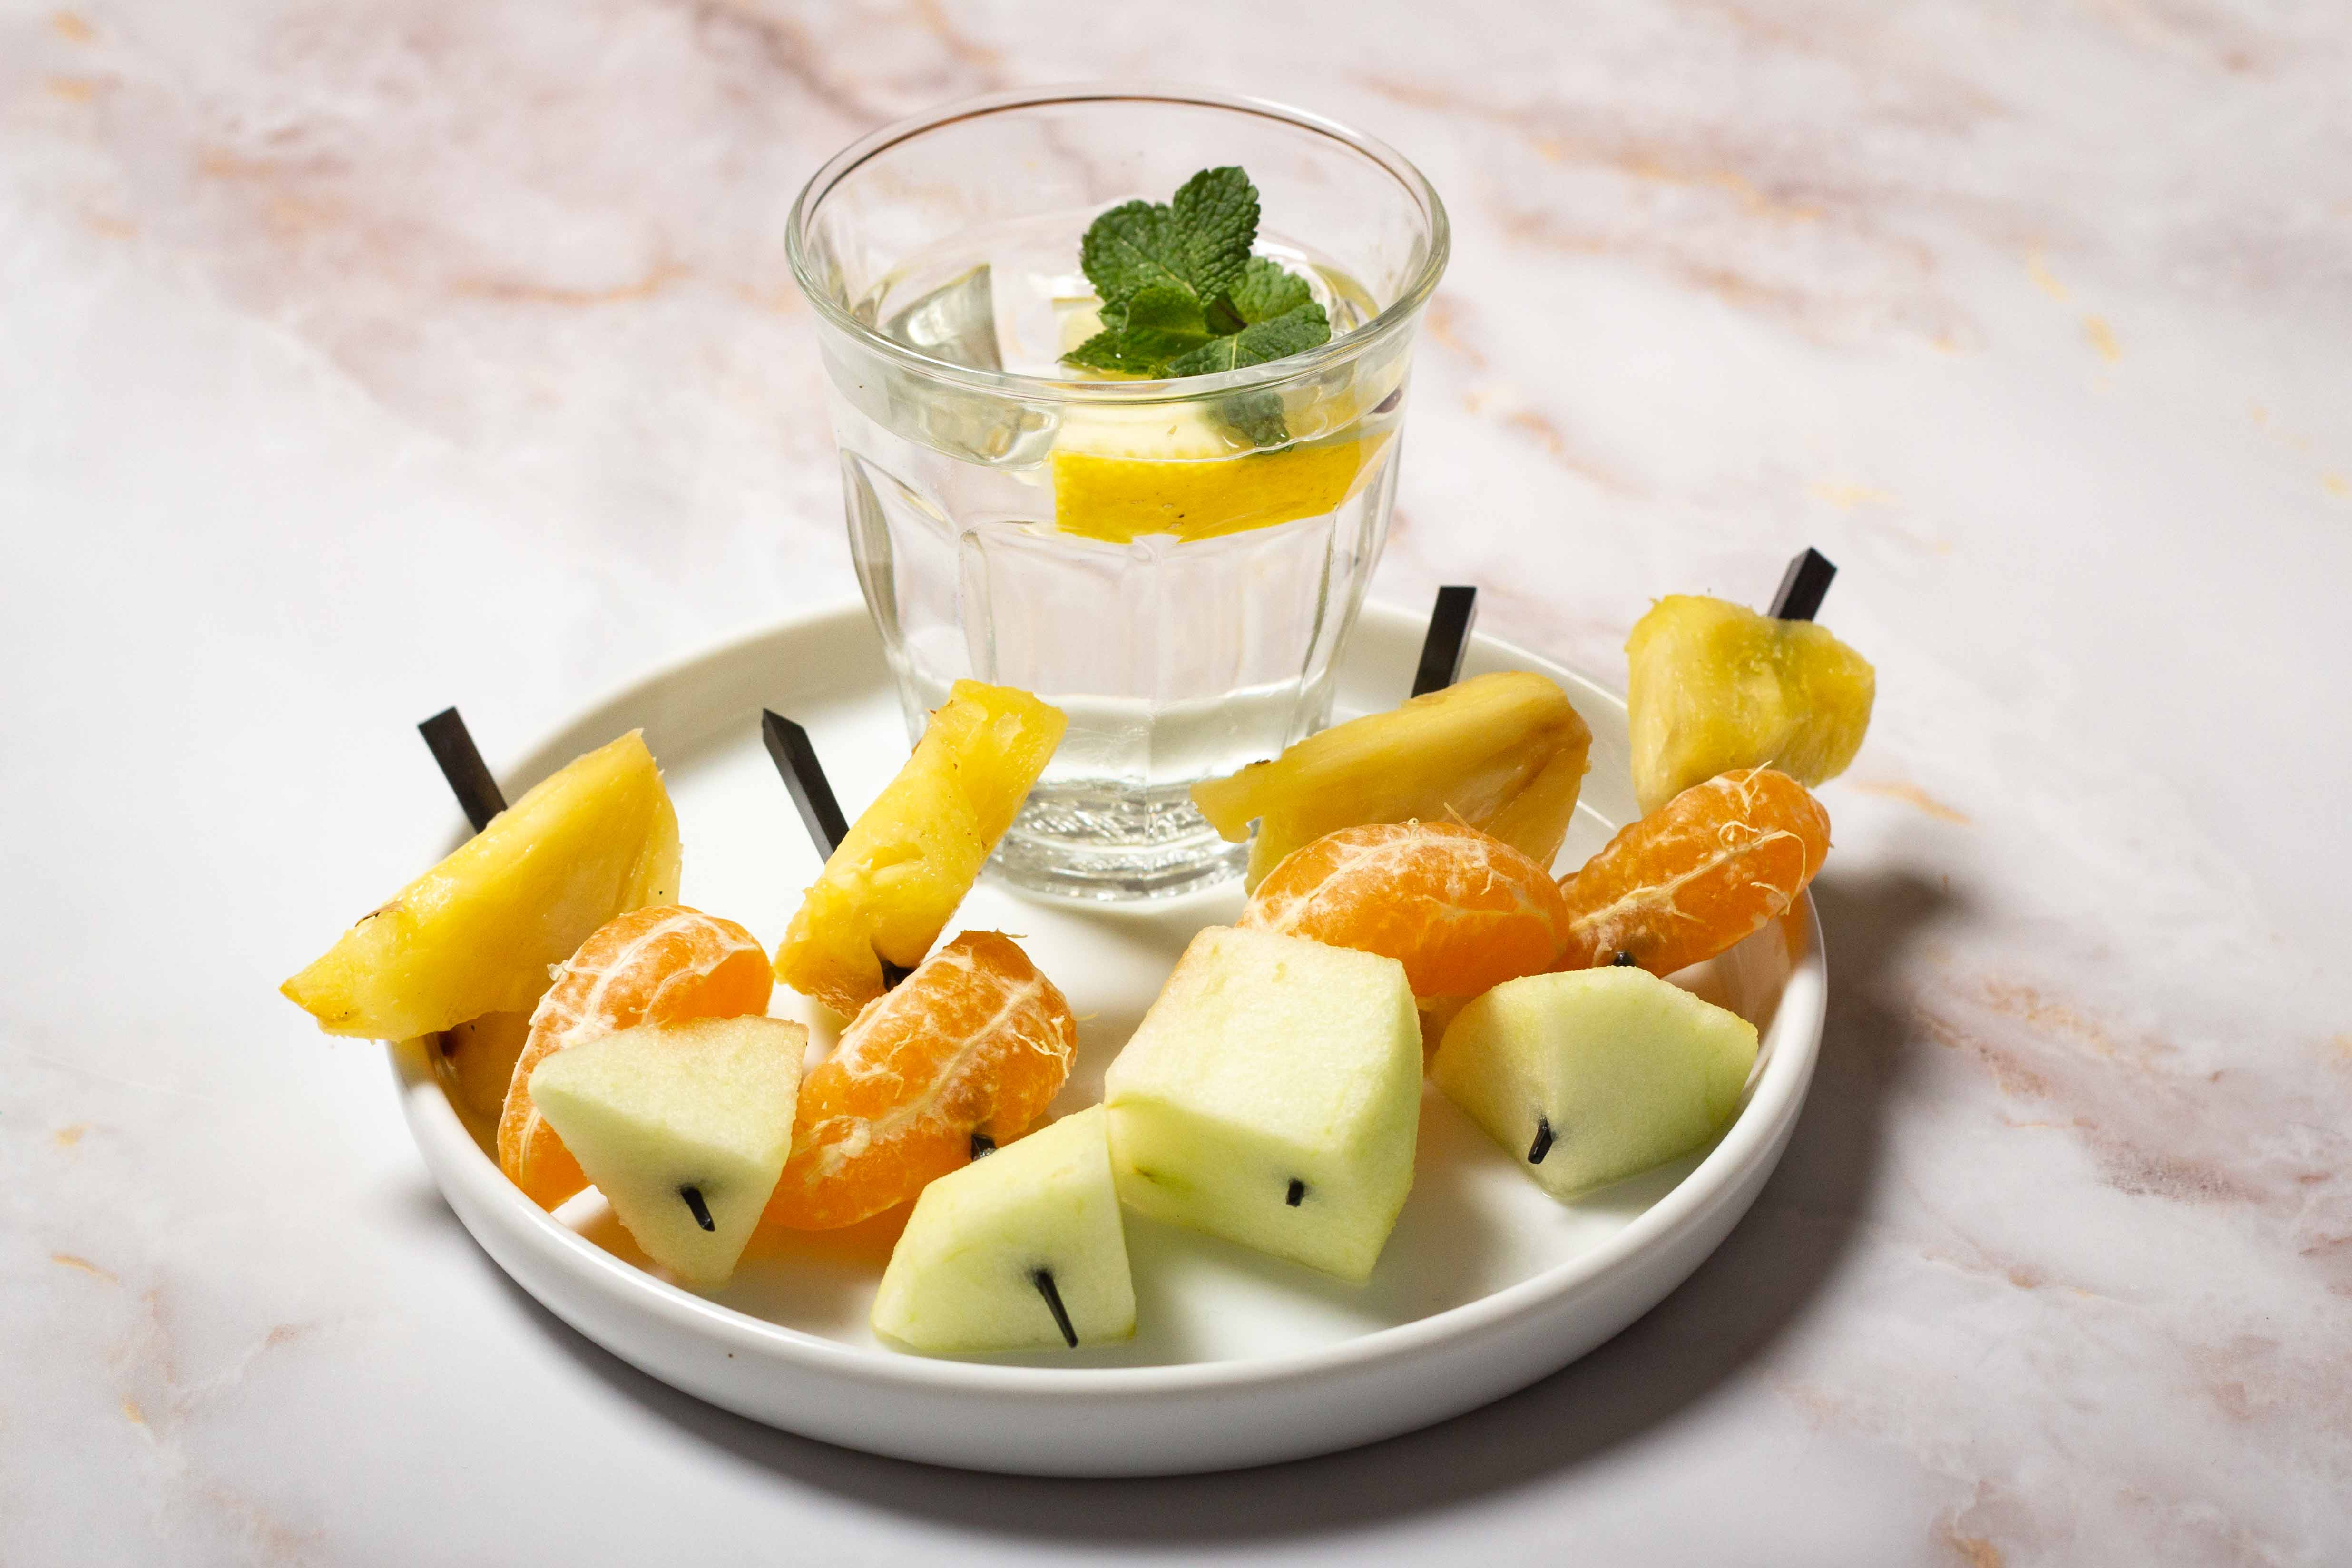 Petit_dej_3_brochettes_fruits.jpg